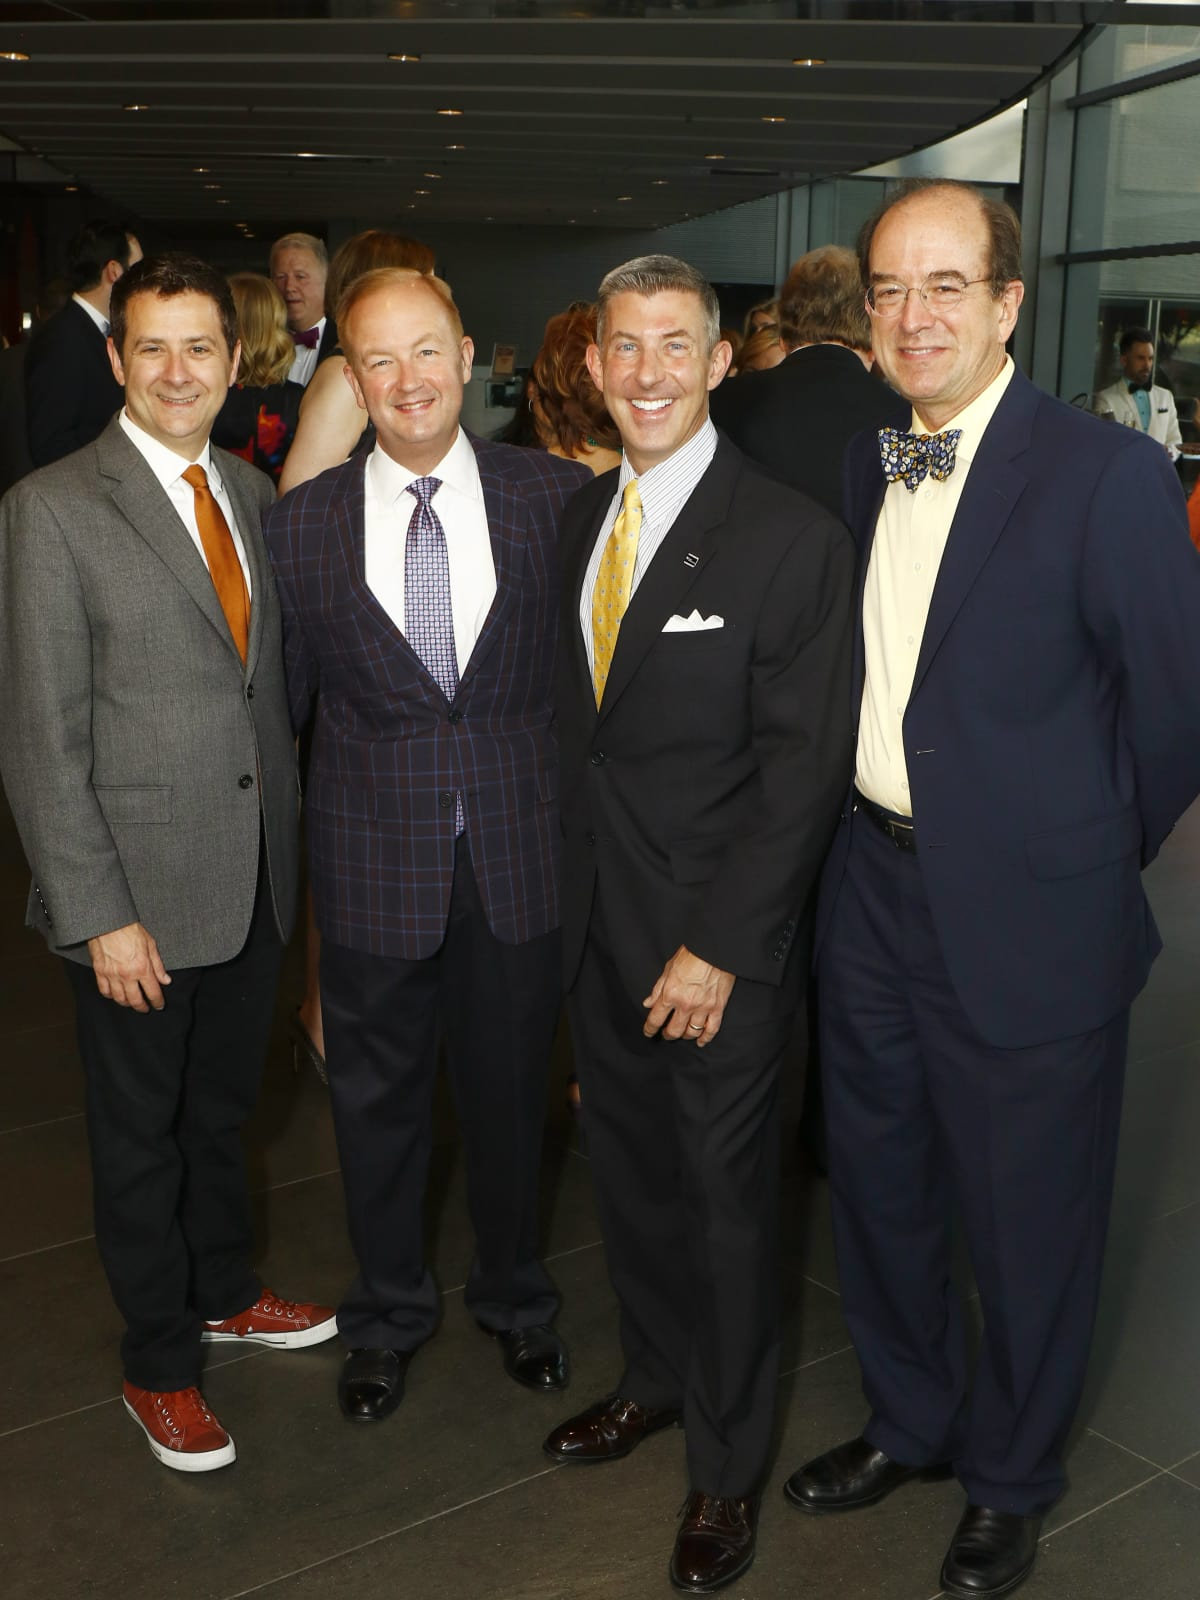 Kevin Moriarty, Paul von Wupperfeld, Andy Smith, Jeff Woodward